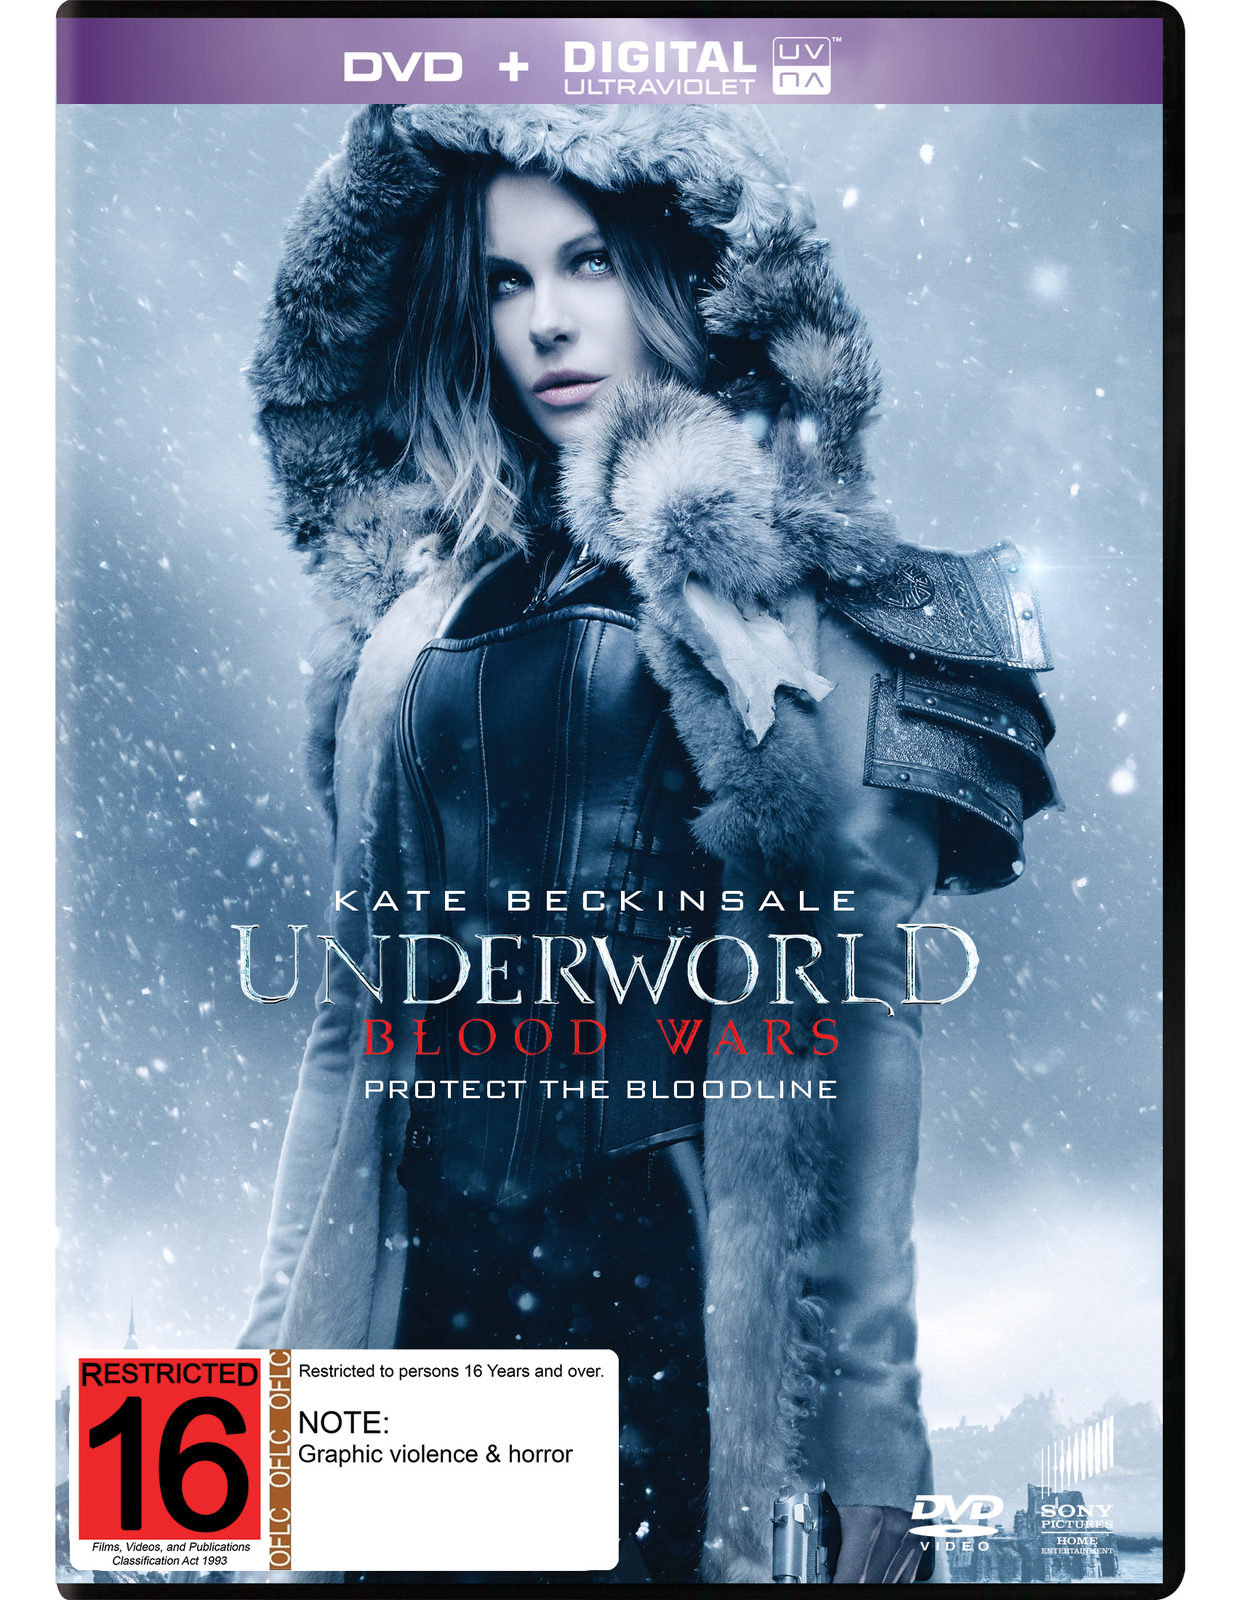 underworld blood wars dvd